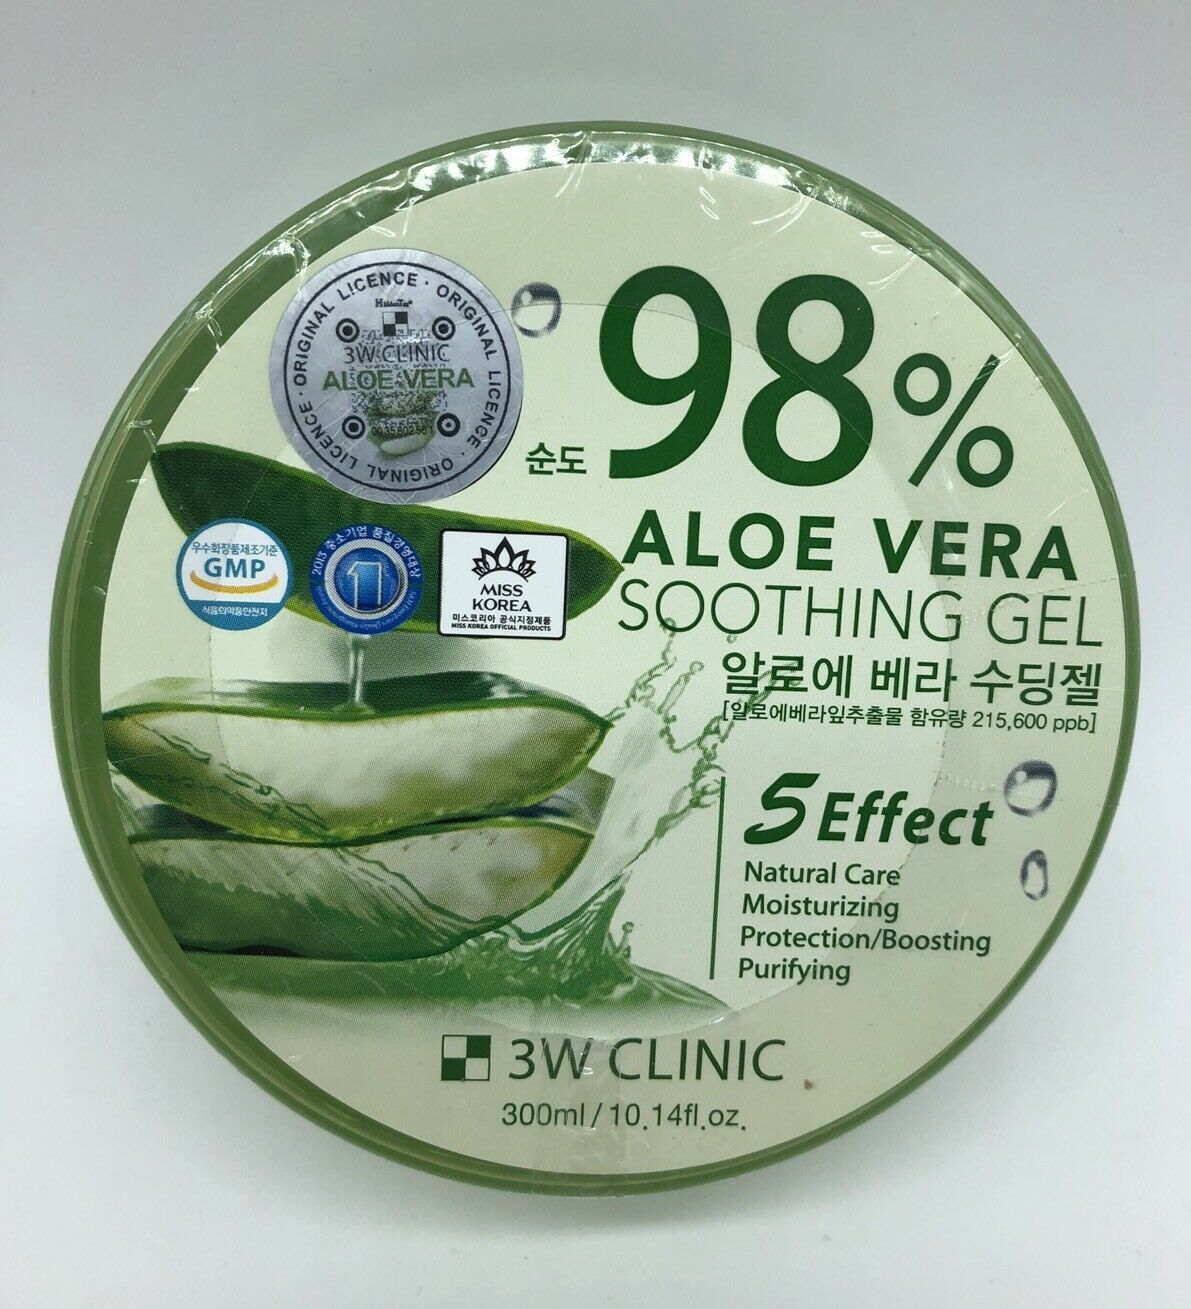 3w Clinic 98 Aloe Vera Soothing Gel Relax Moisture 300g Korean Beauty K Jeju Fresh Shooting 1 Of 2only Available